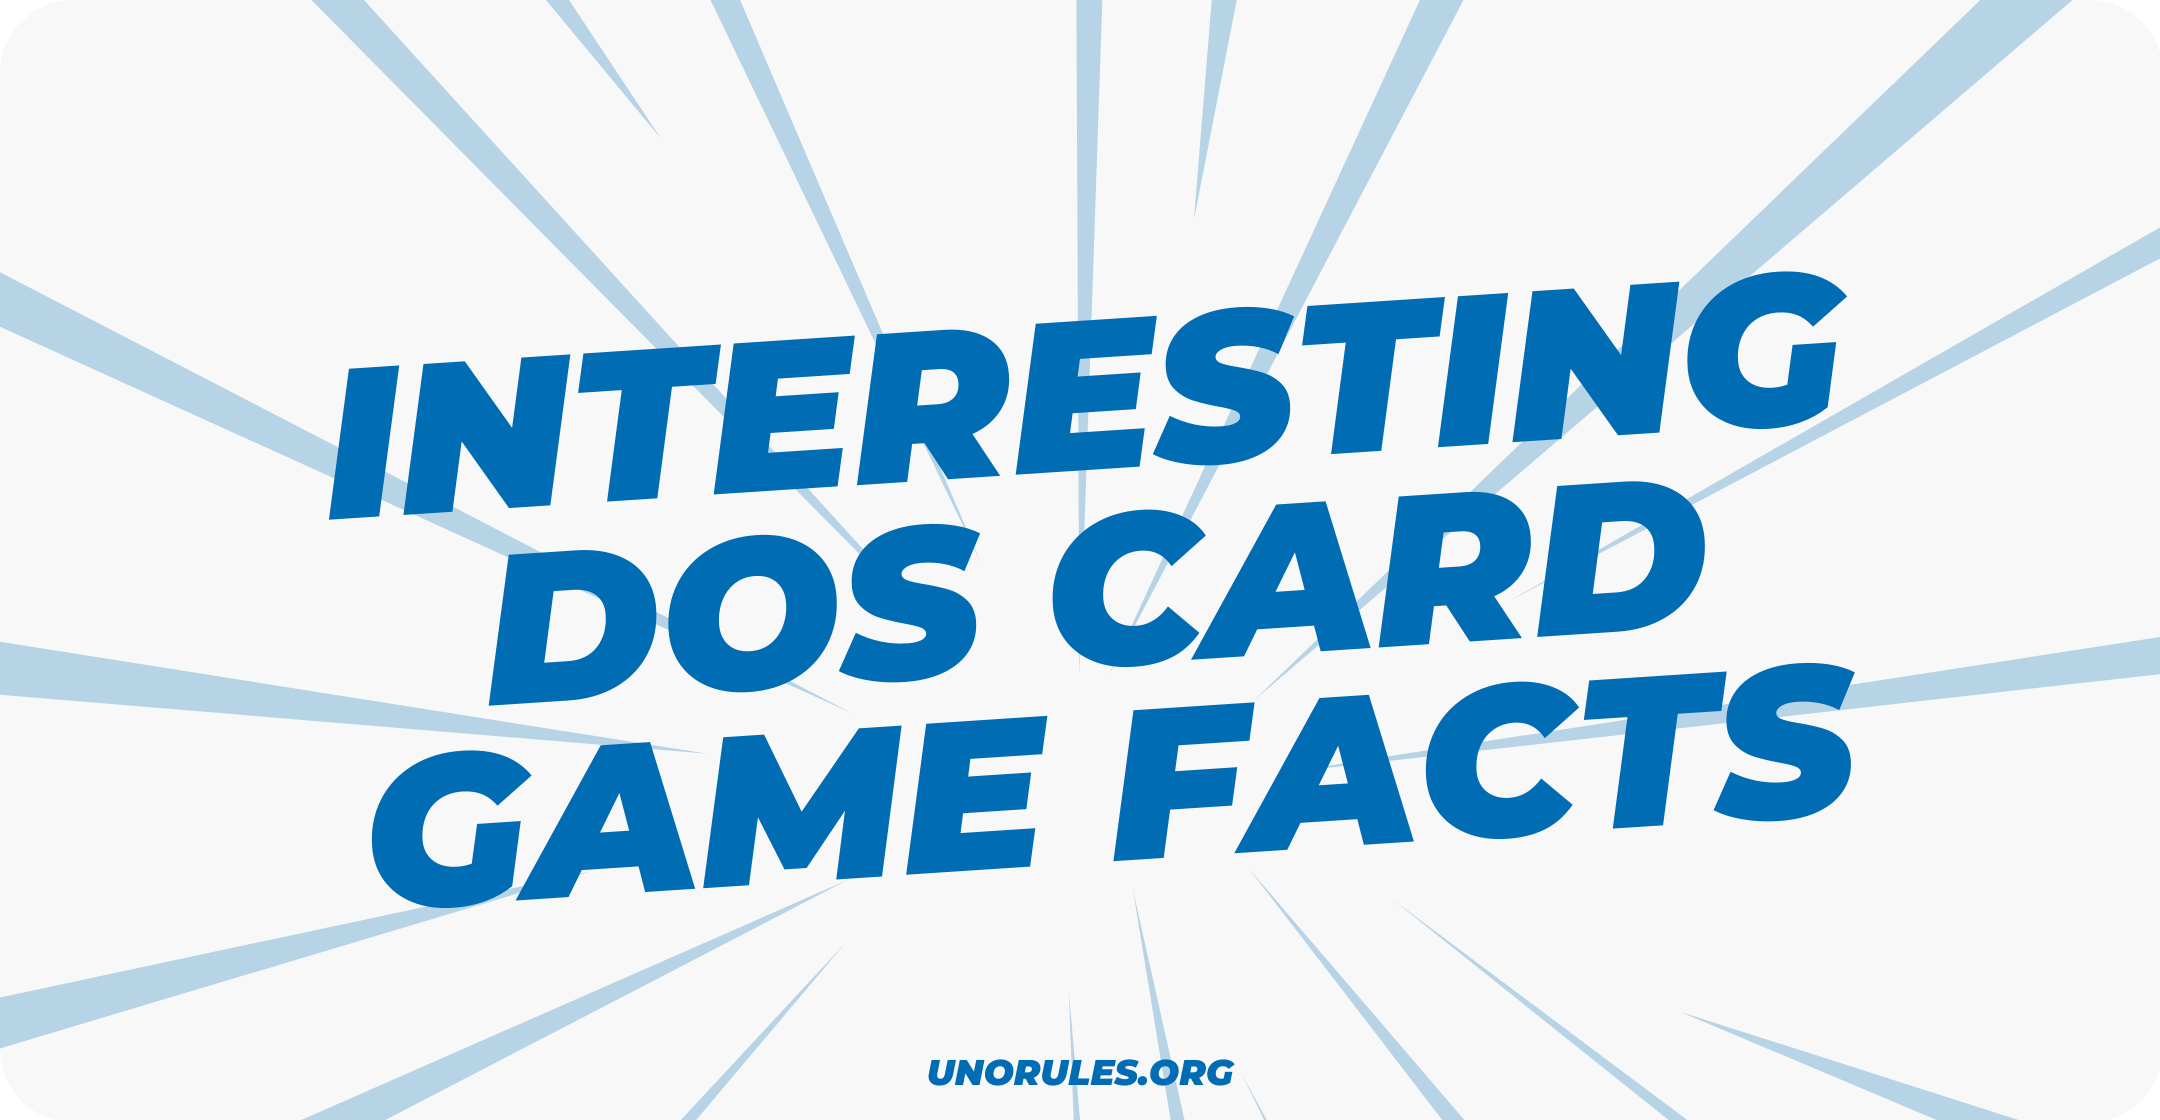 Interesting Dos card game facts